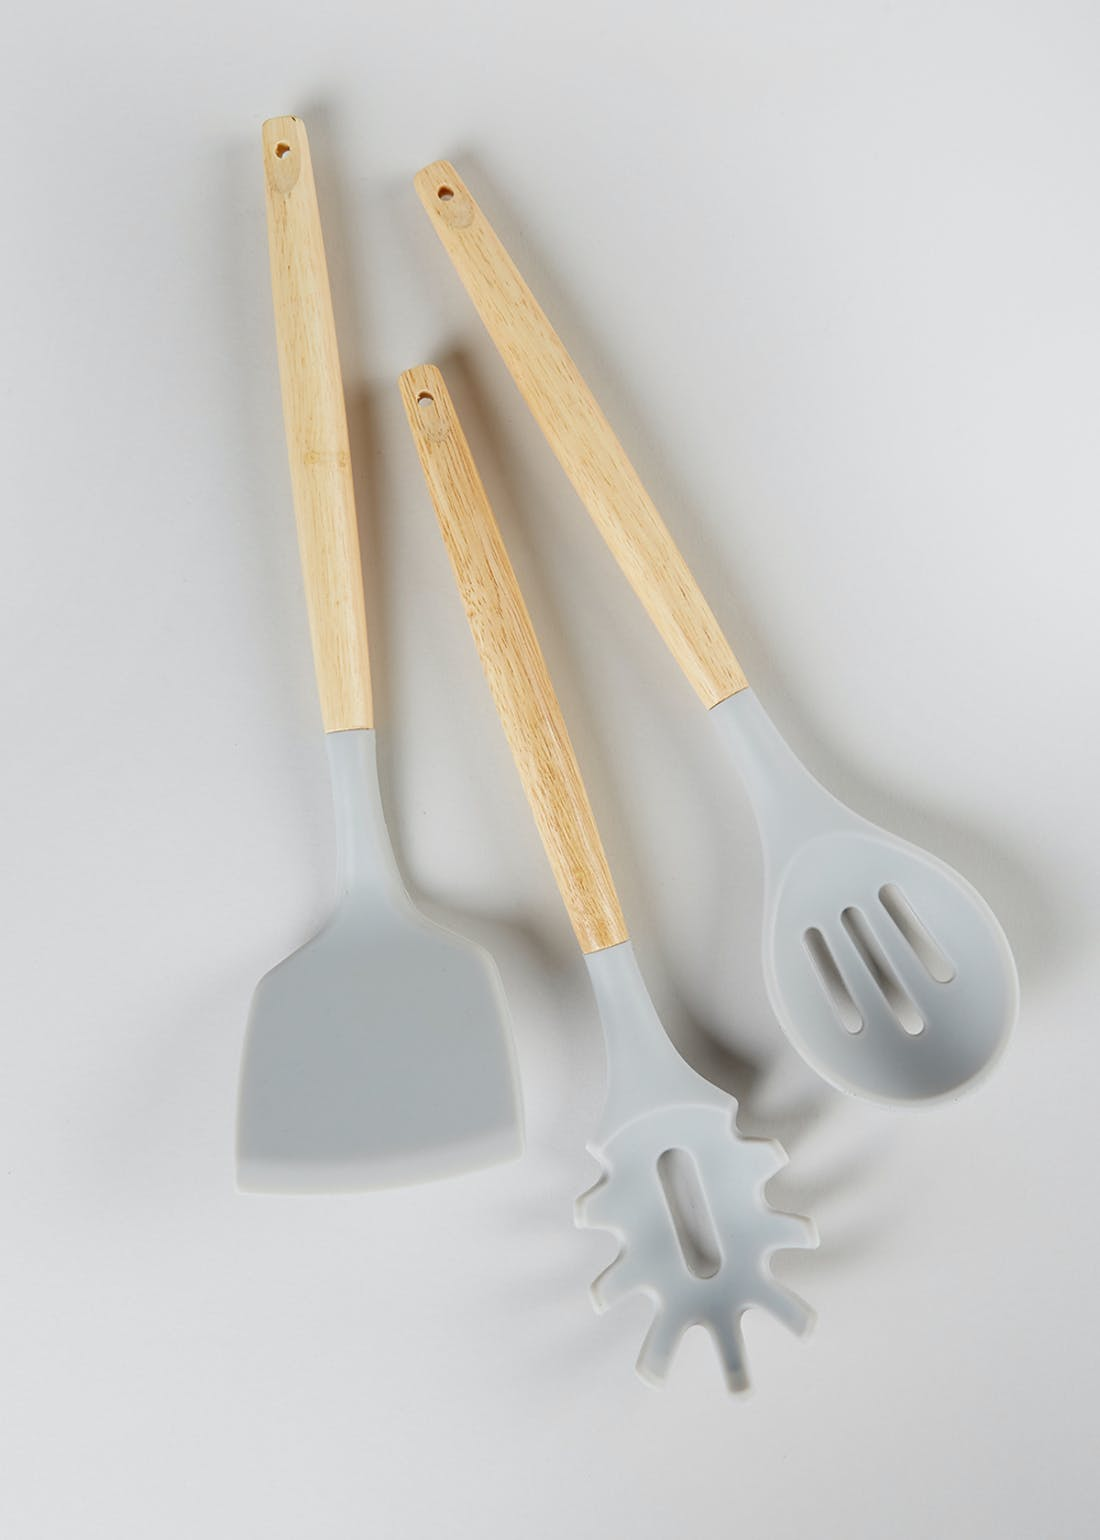 3 Piece Wood & Silicone Kitchen Utensil Set